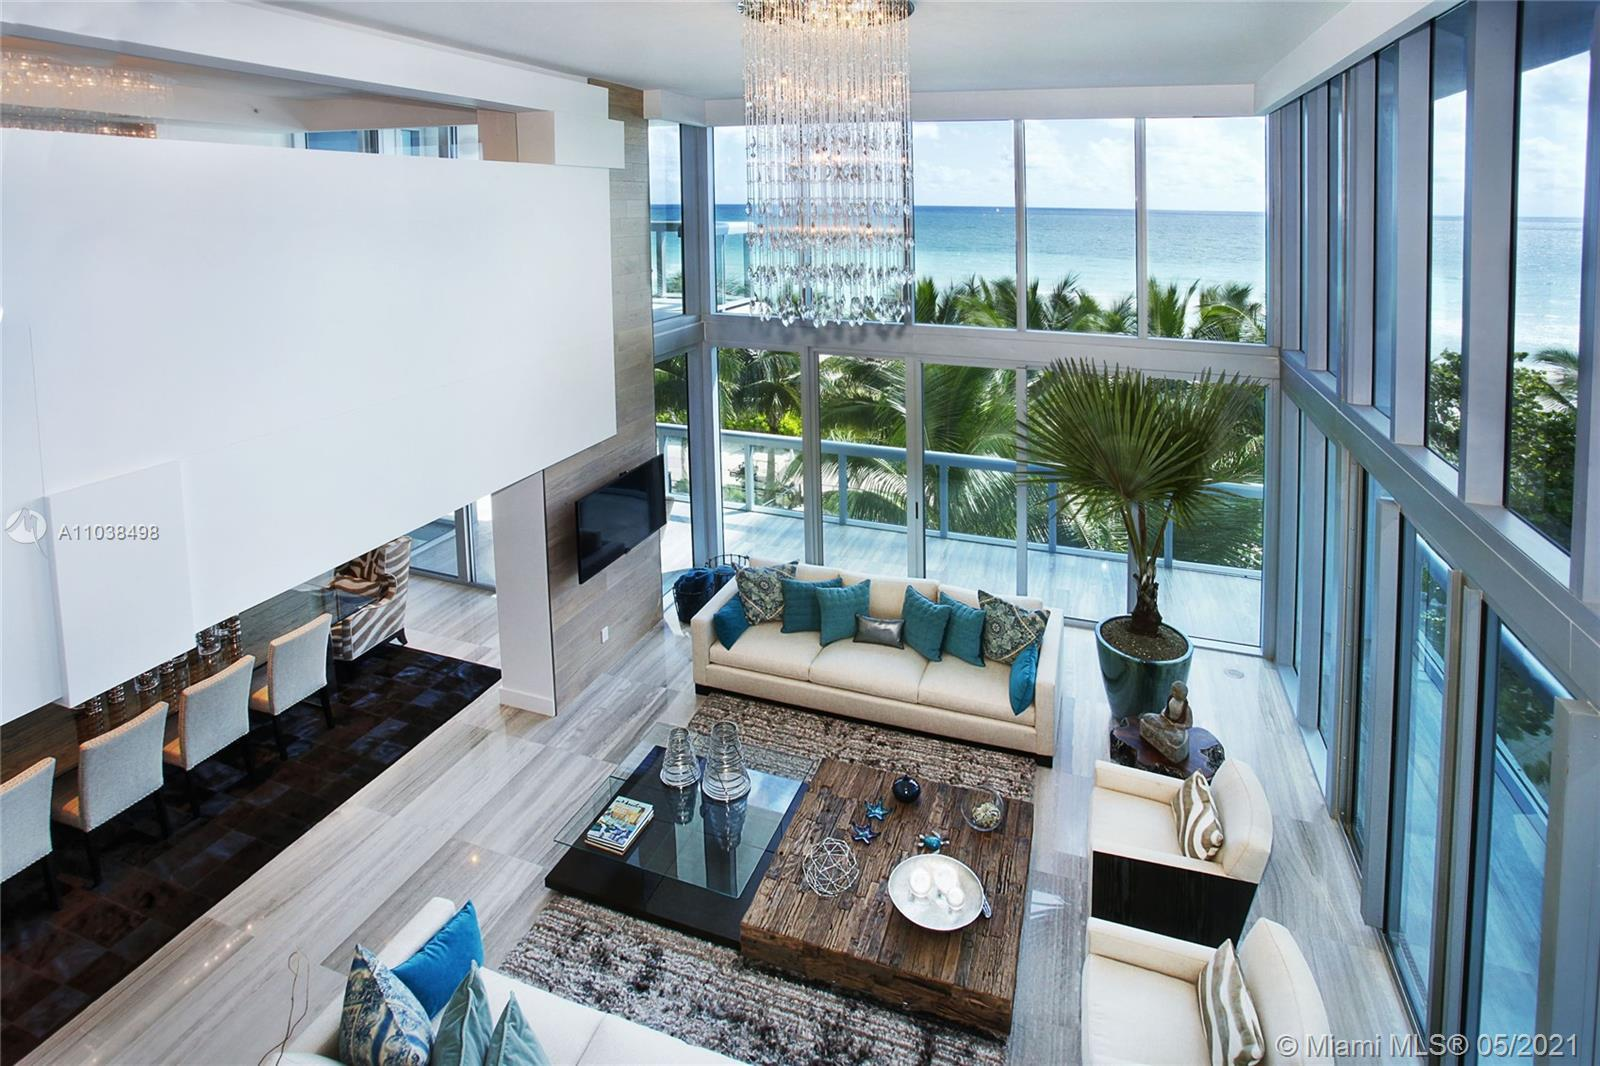 This stunning and unique beach house combines the warmth and privacy of an ocean front home with the